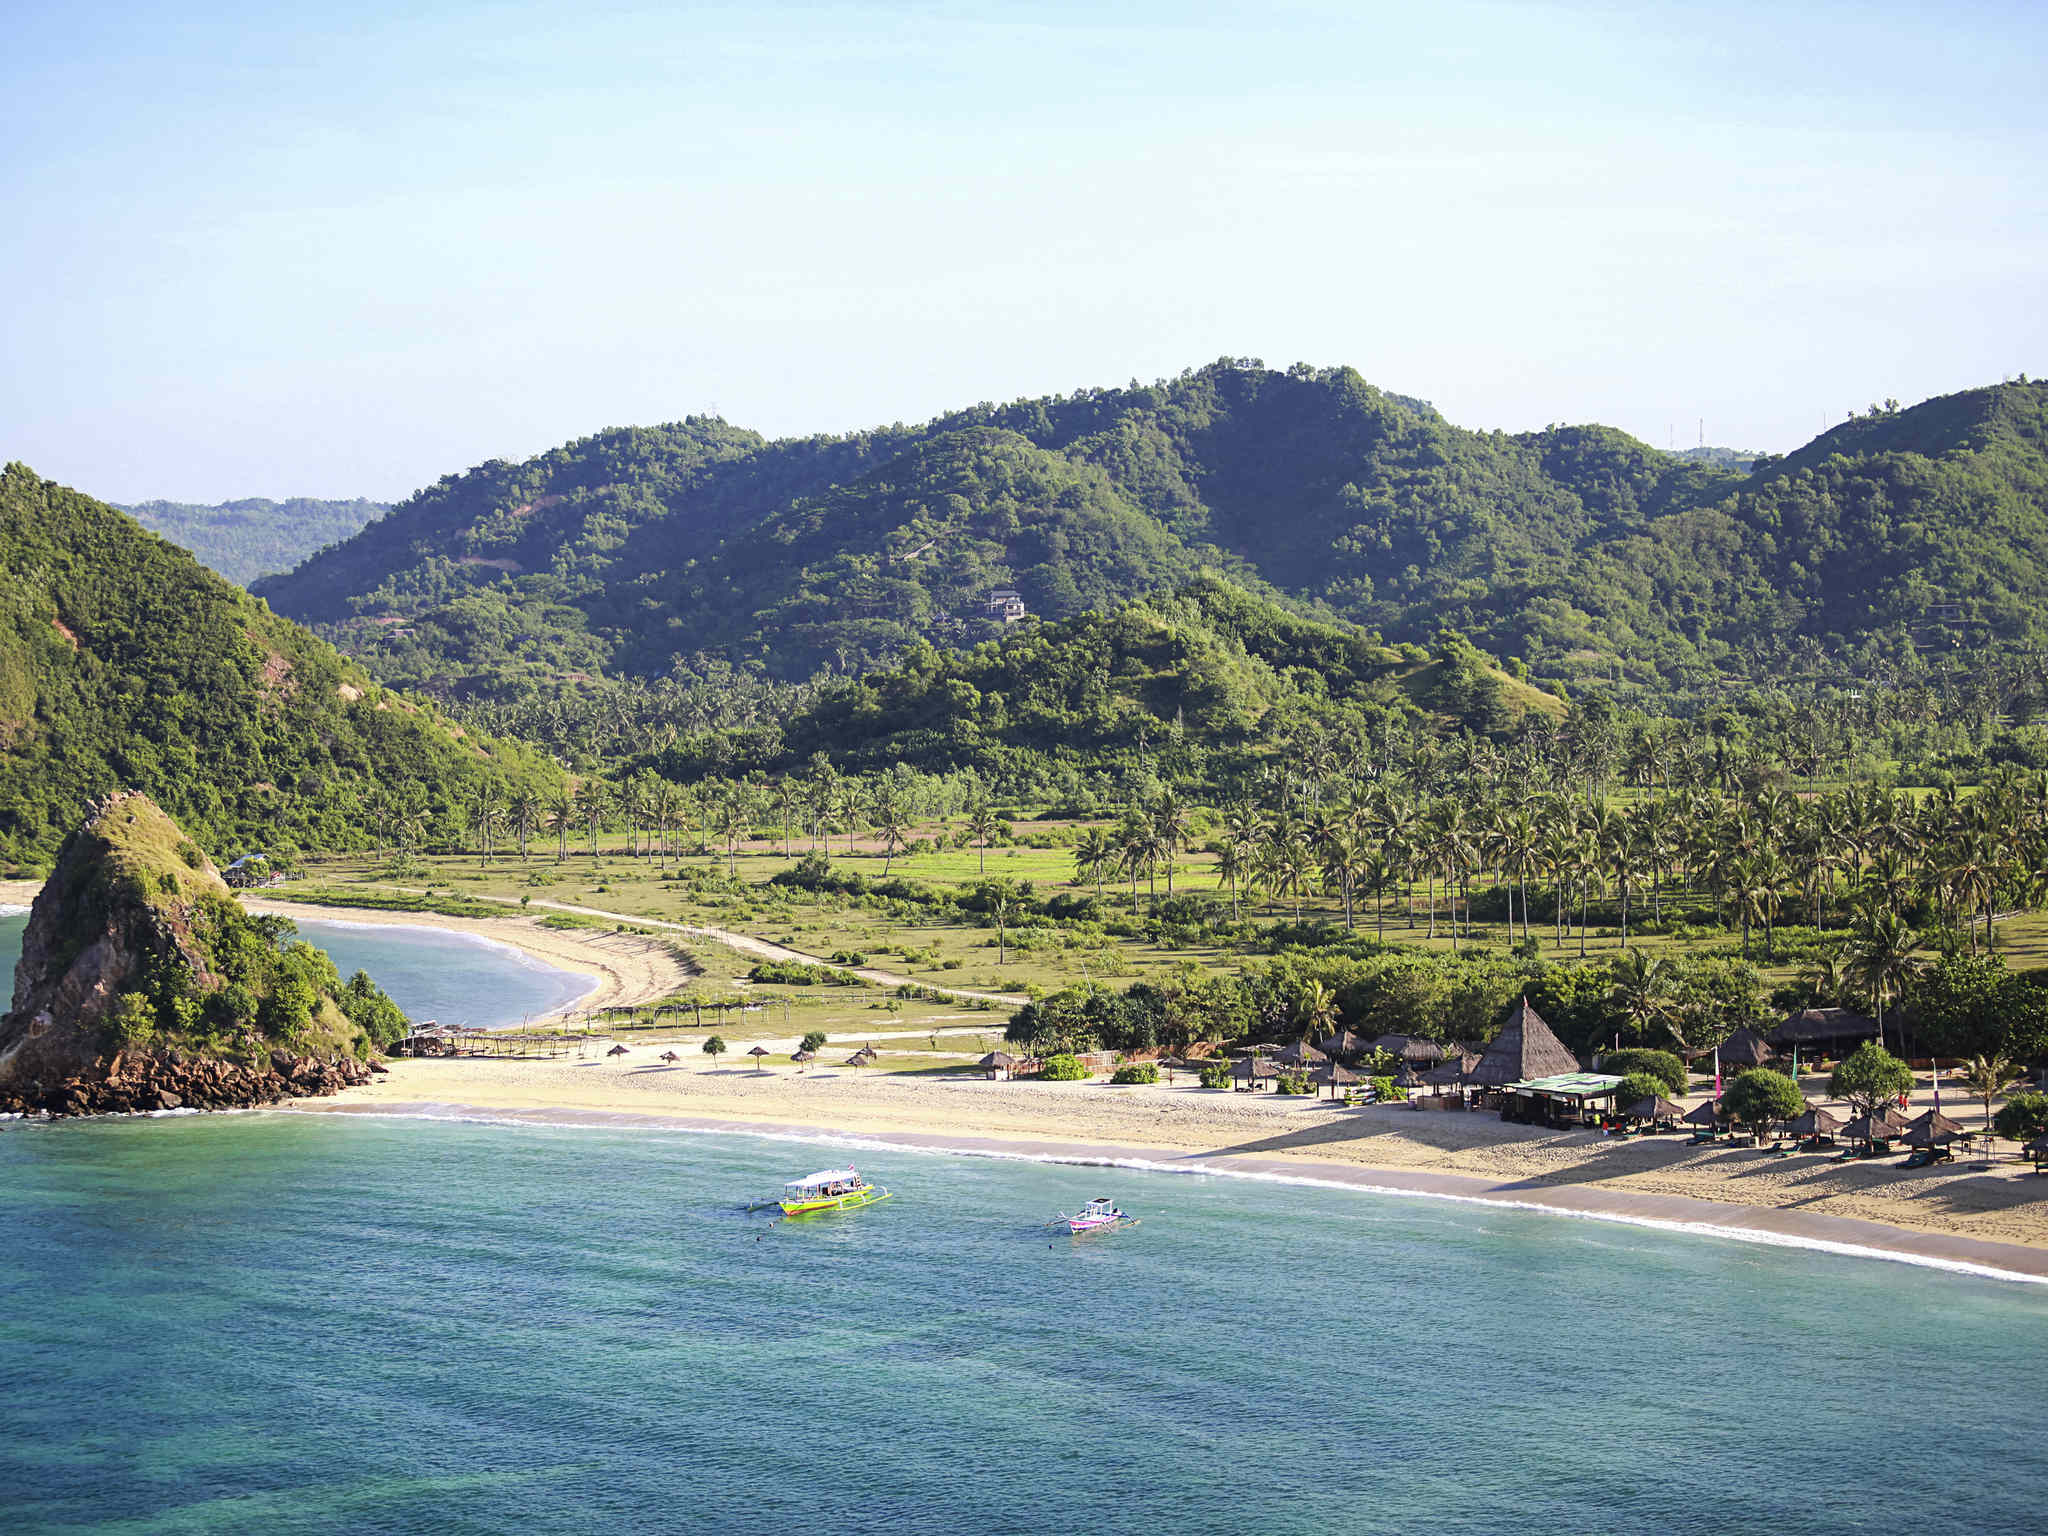 Destination Novotel Lombok Resort & Villas